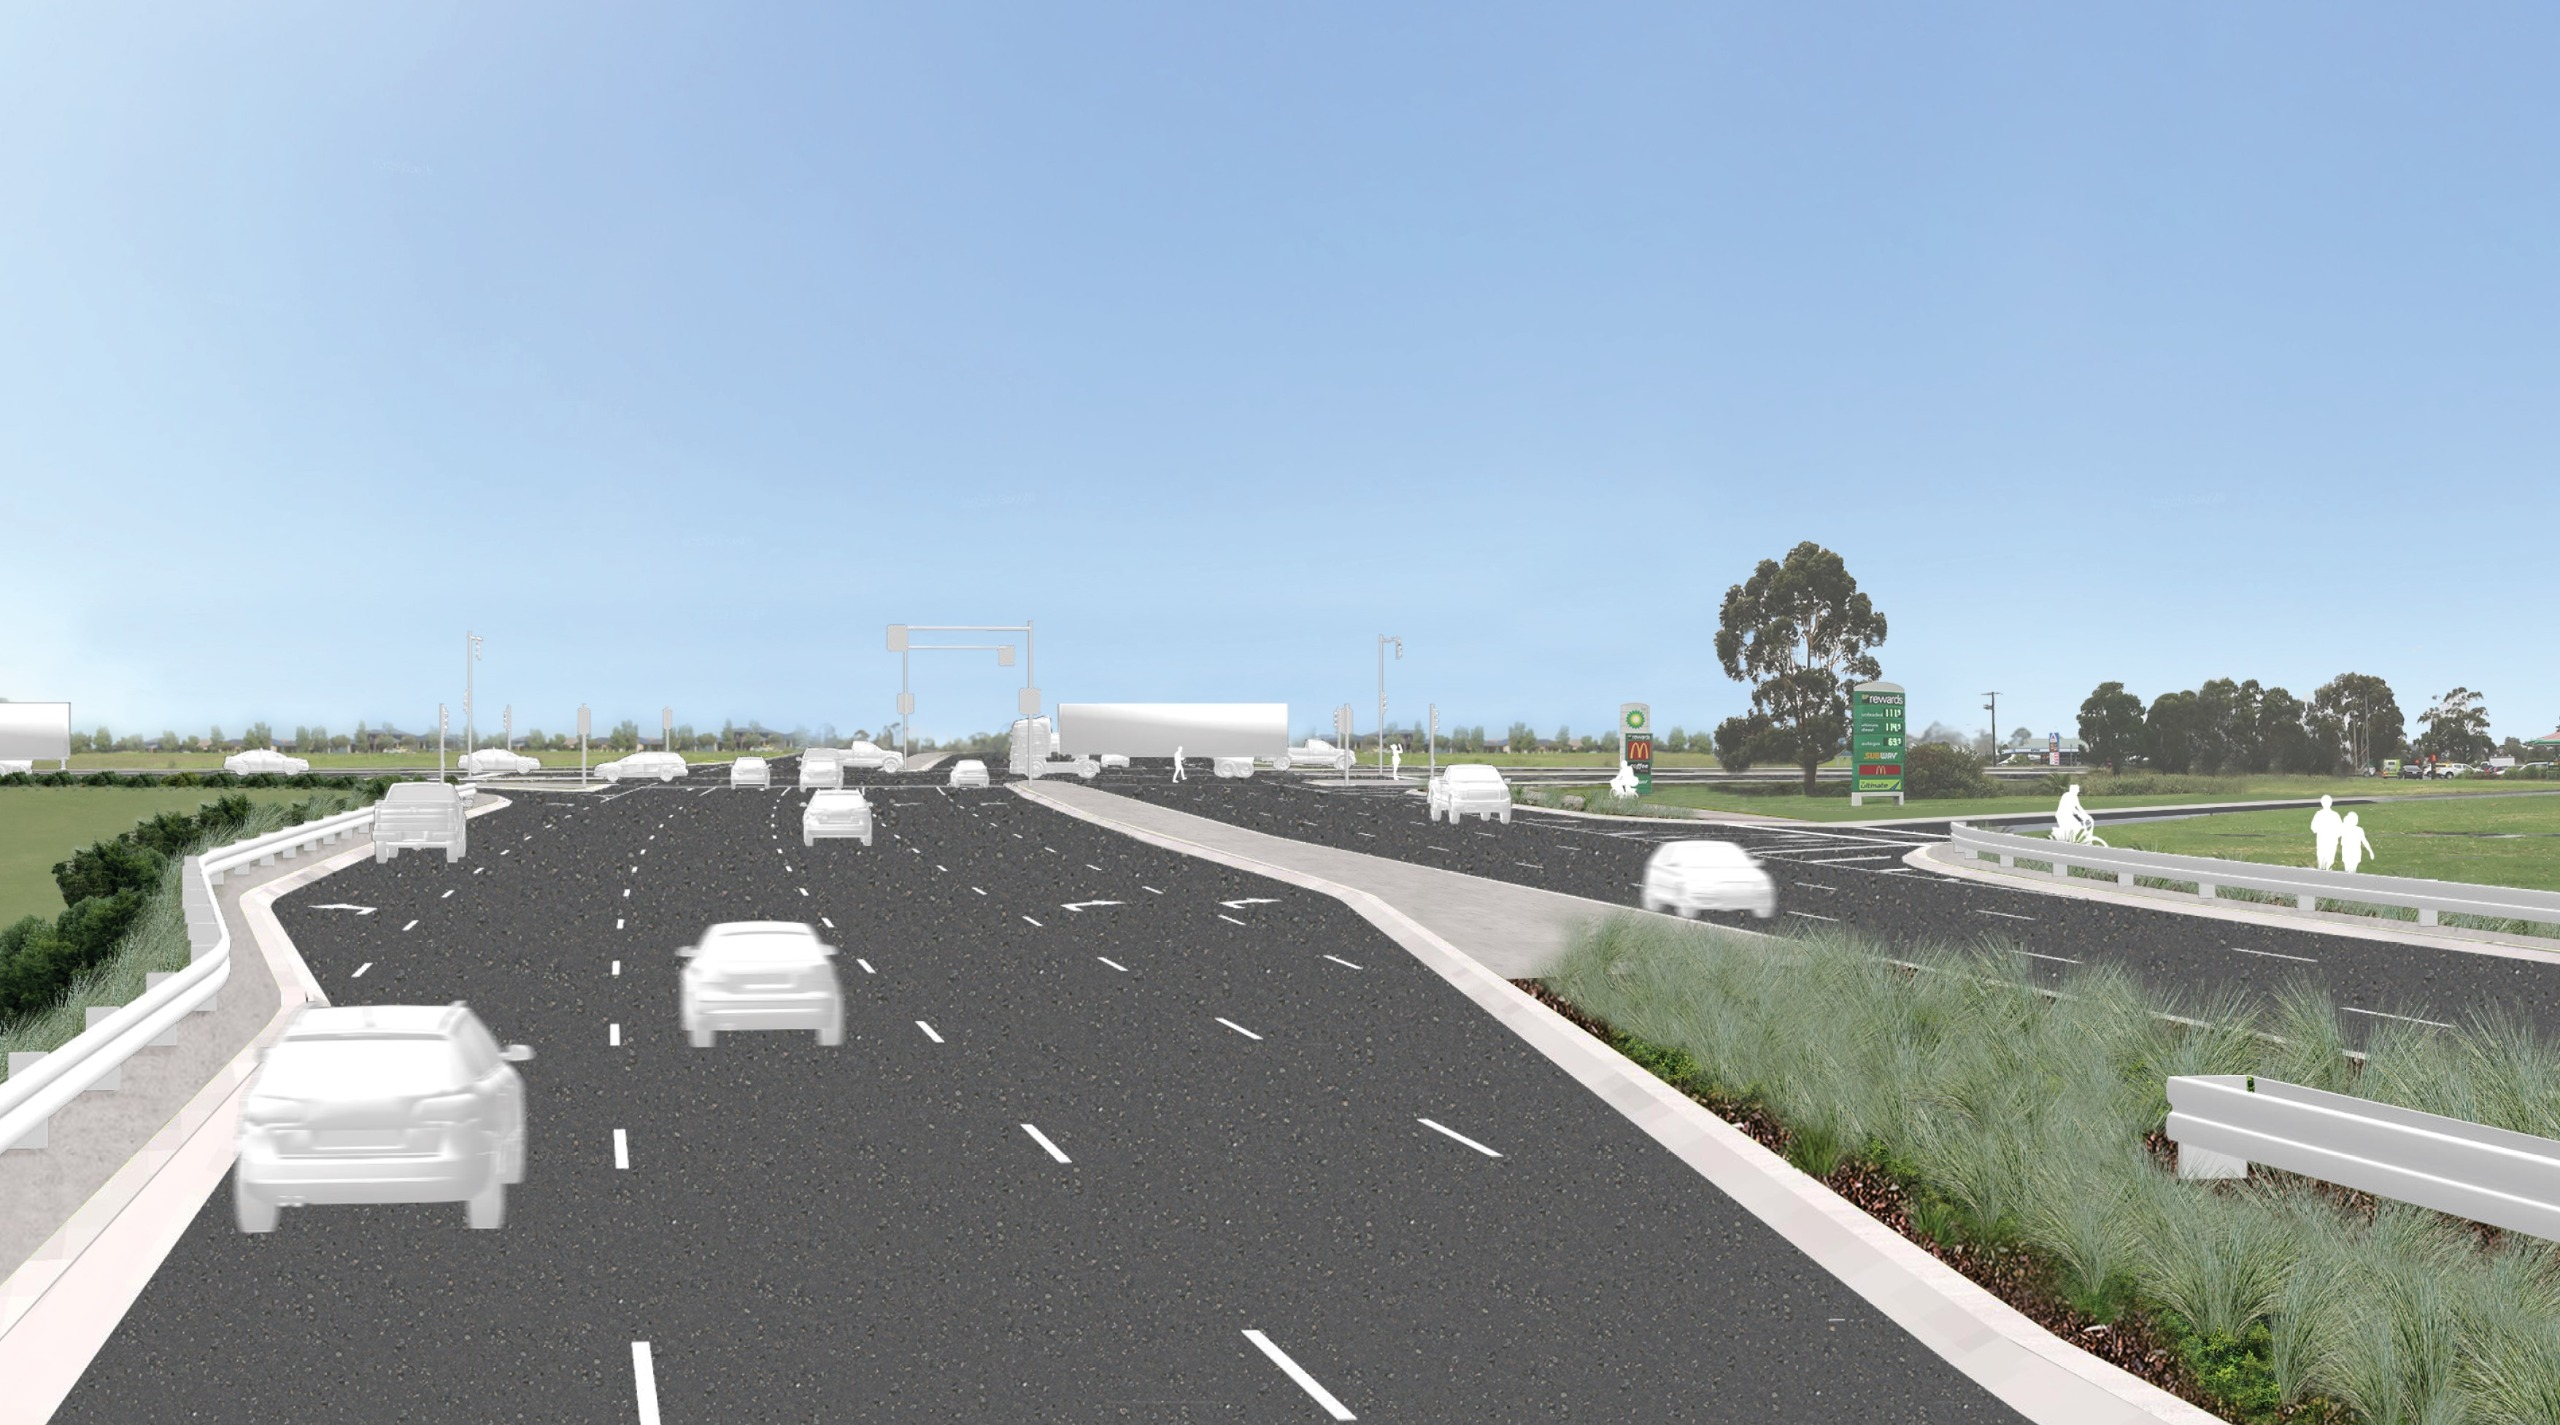 Artist's impression of cars driving through the Western Port Highway intersection 15 years after project completion